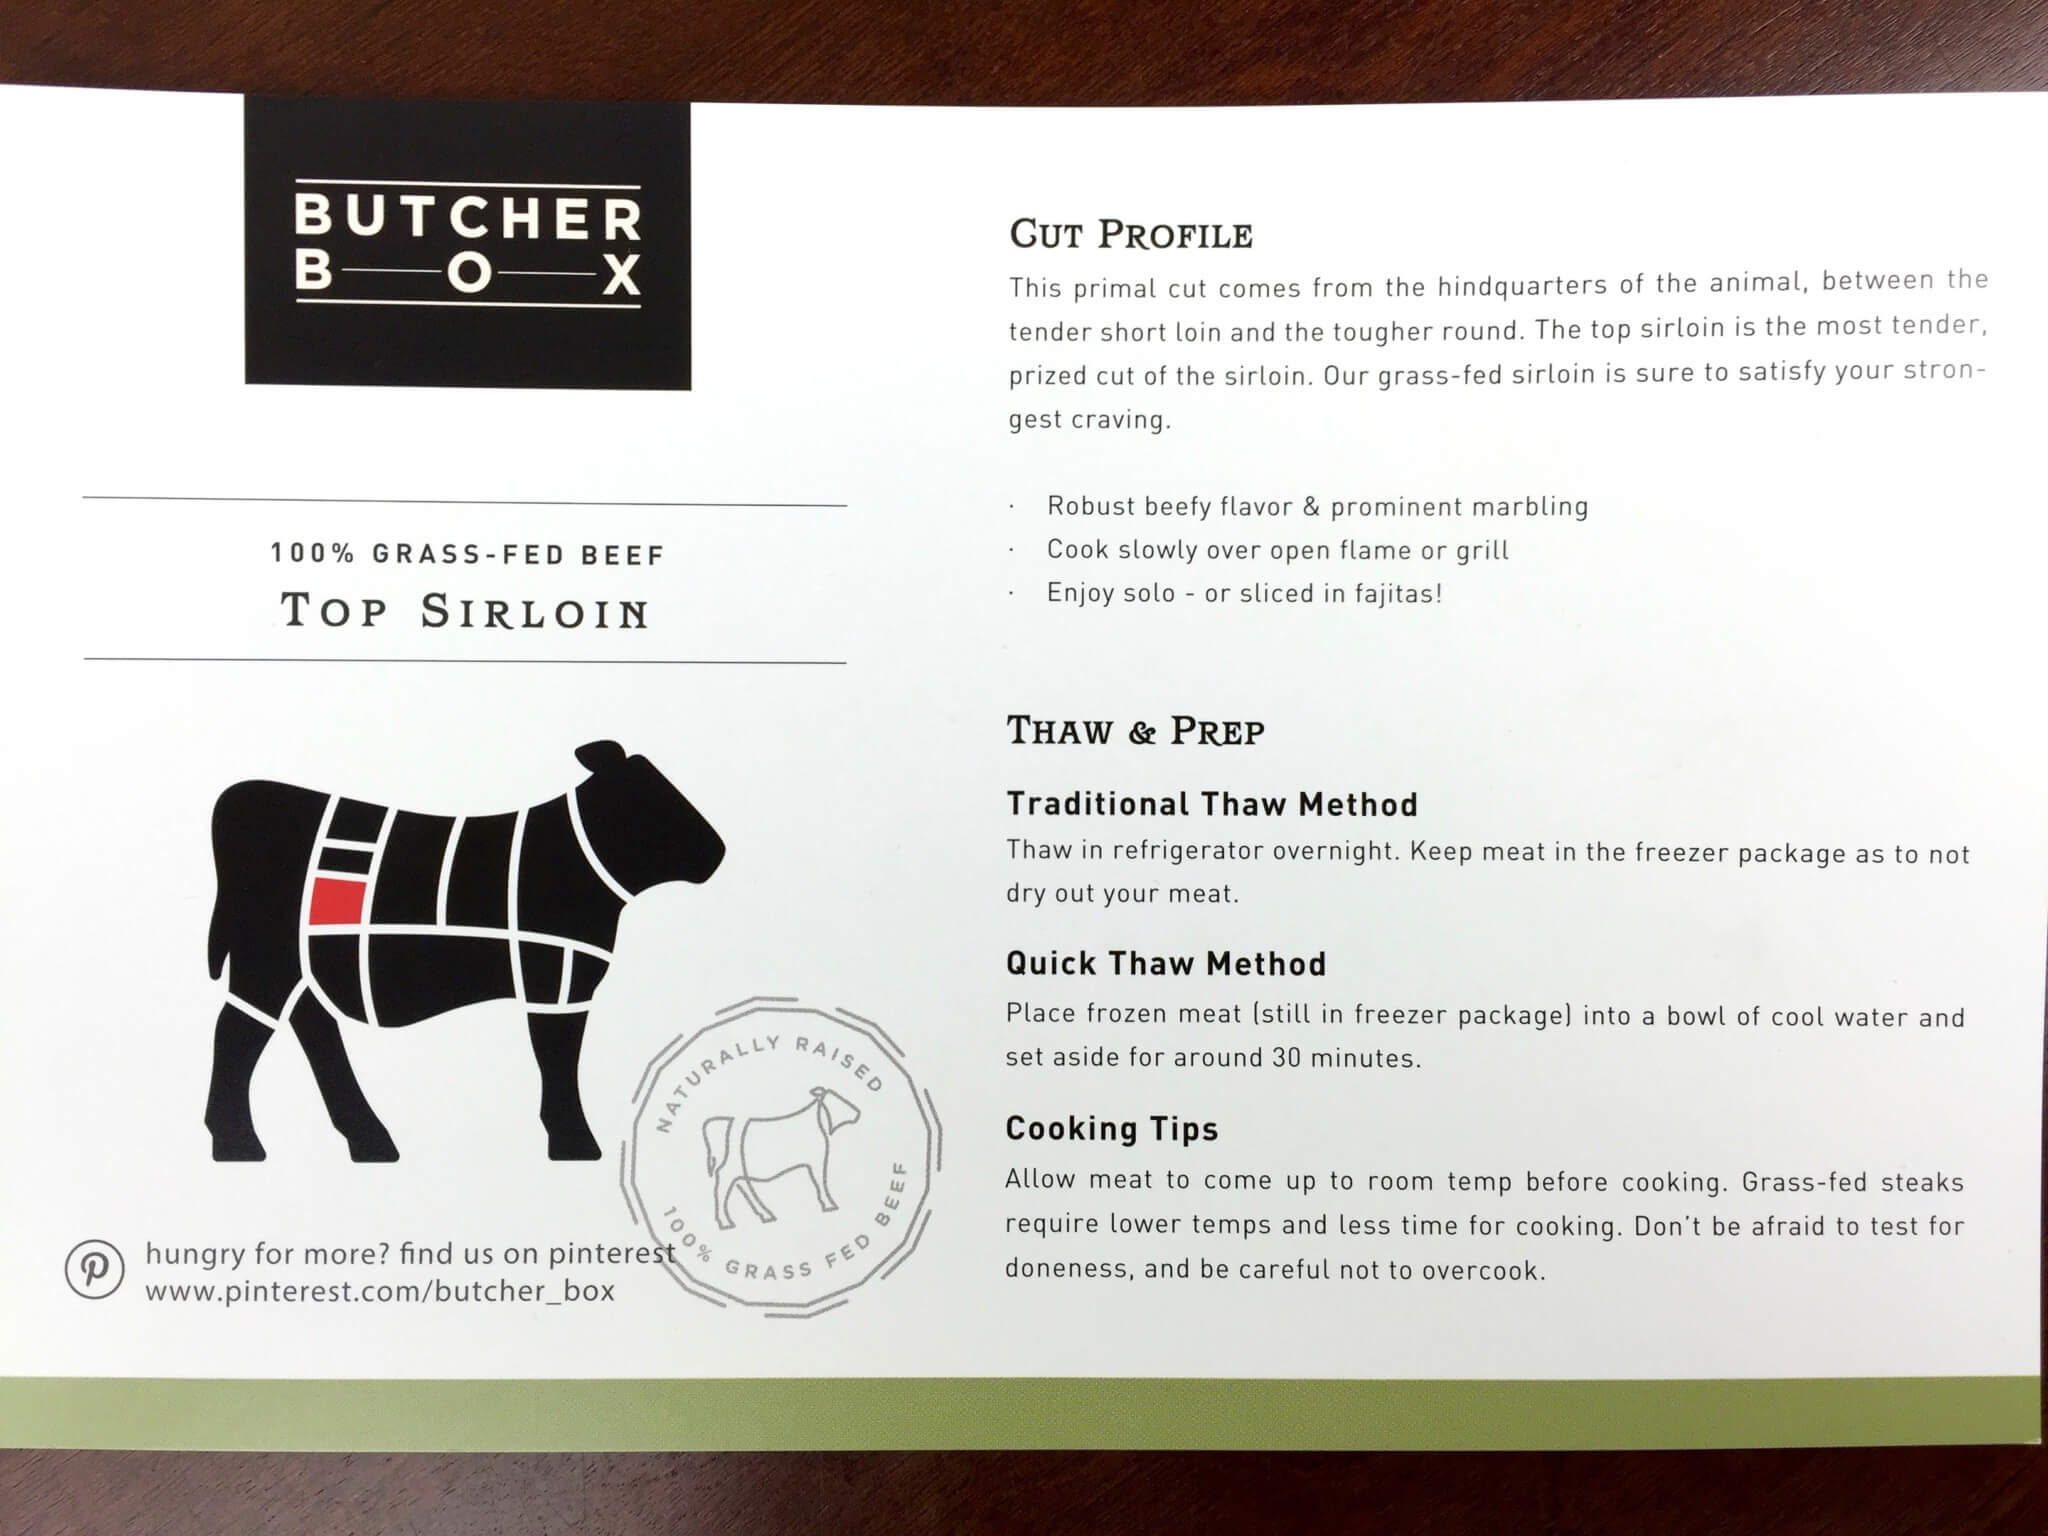 Butcher box coupon code